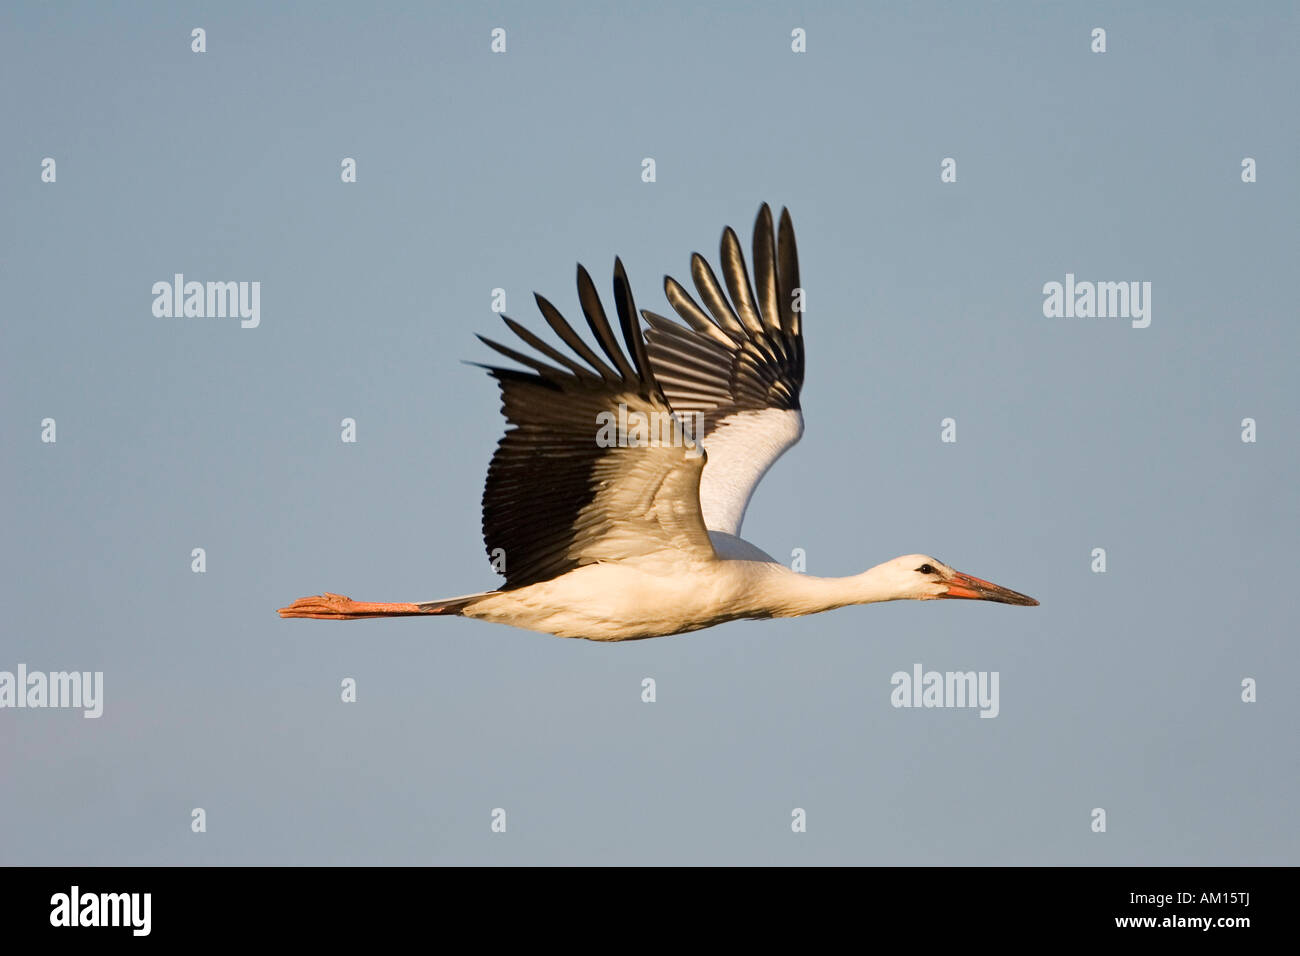 Young white storch (Ciconia ciconia) flying, Germany Stock Photo